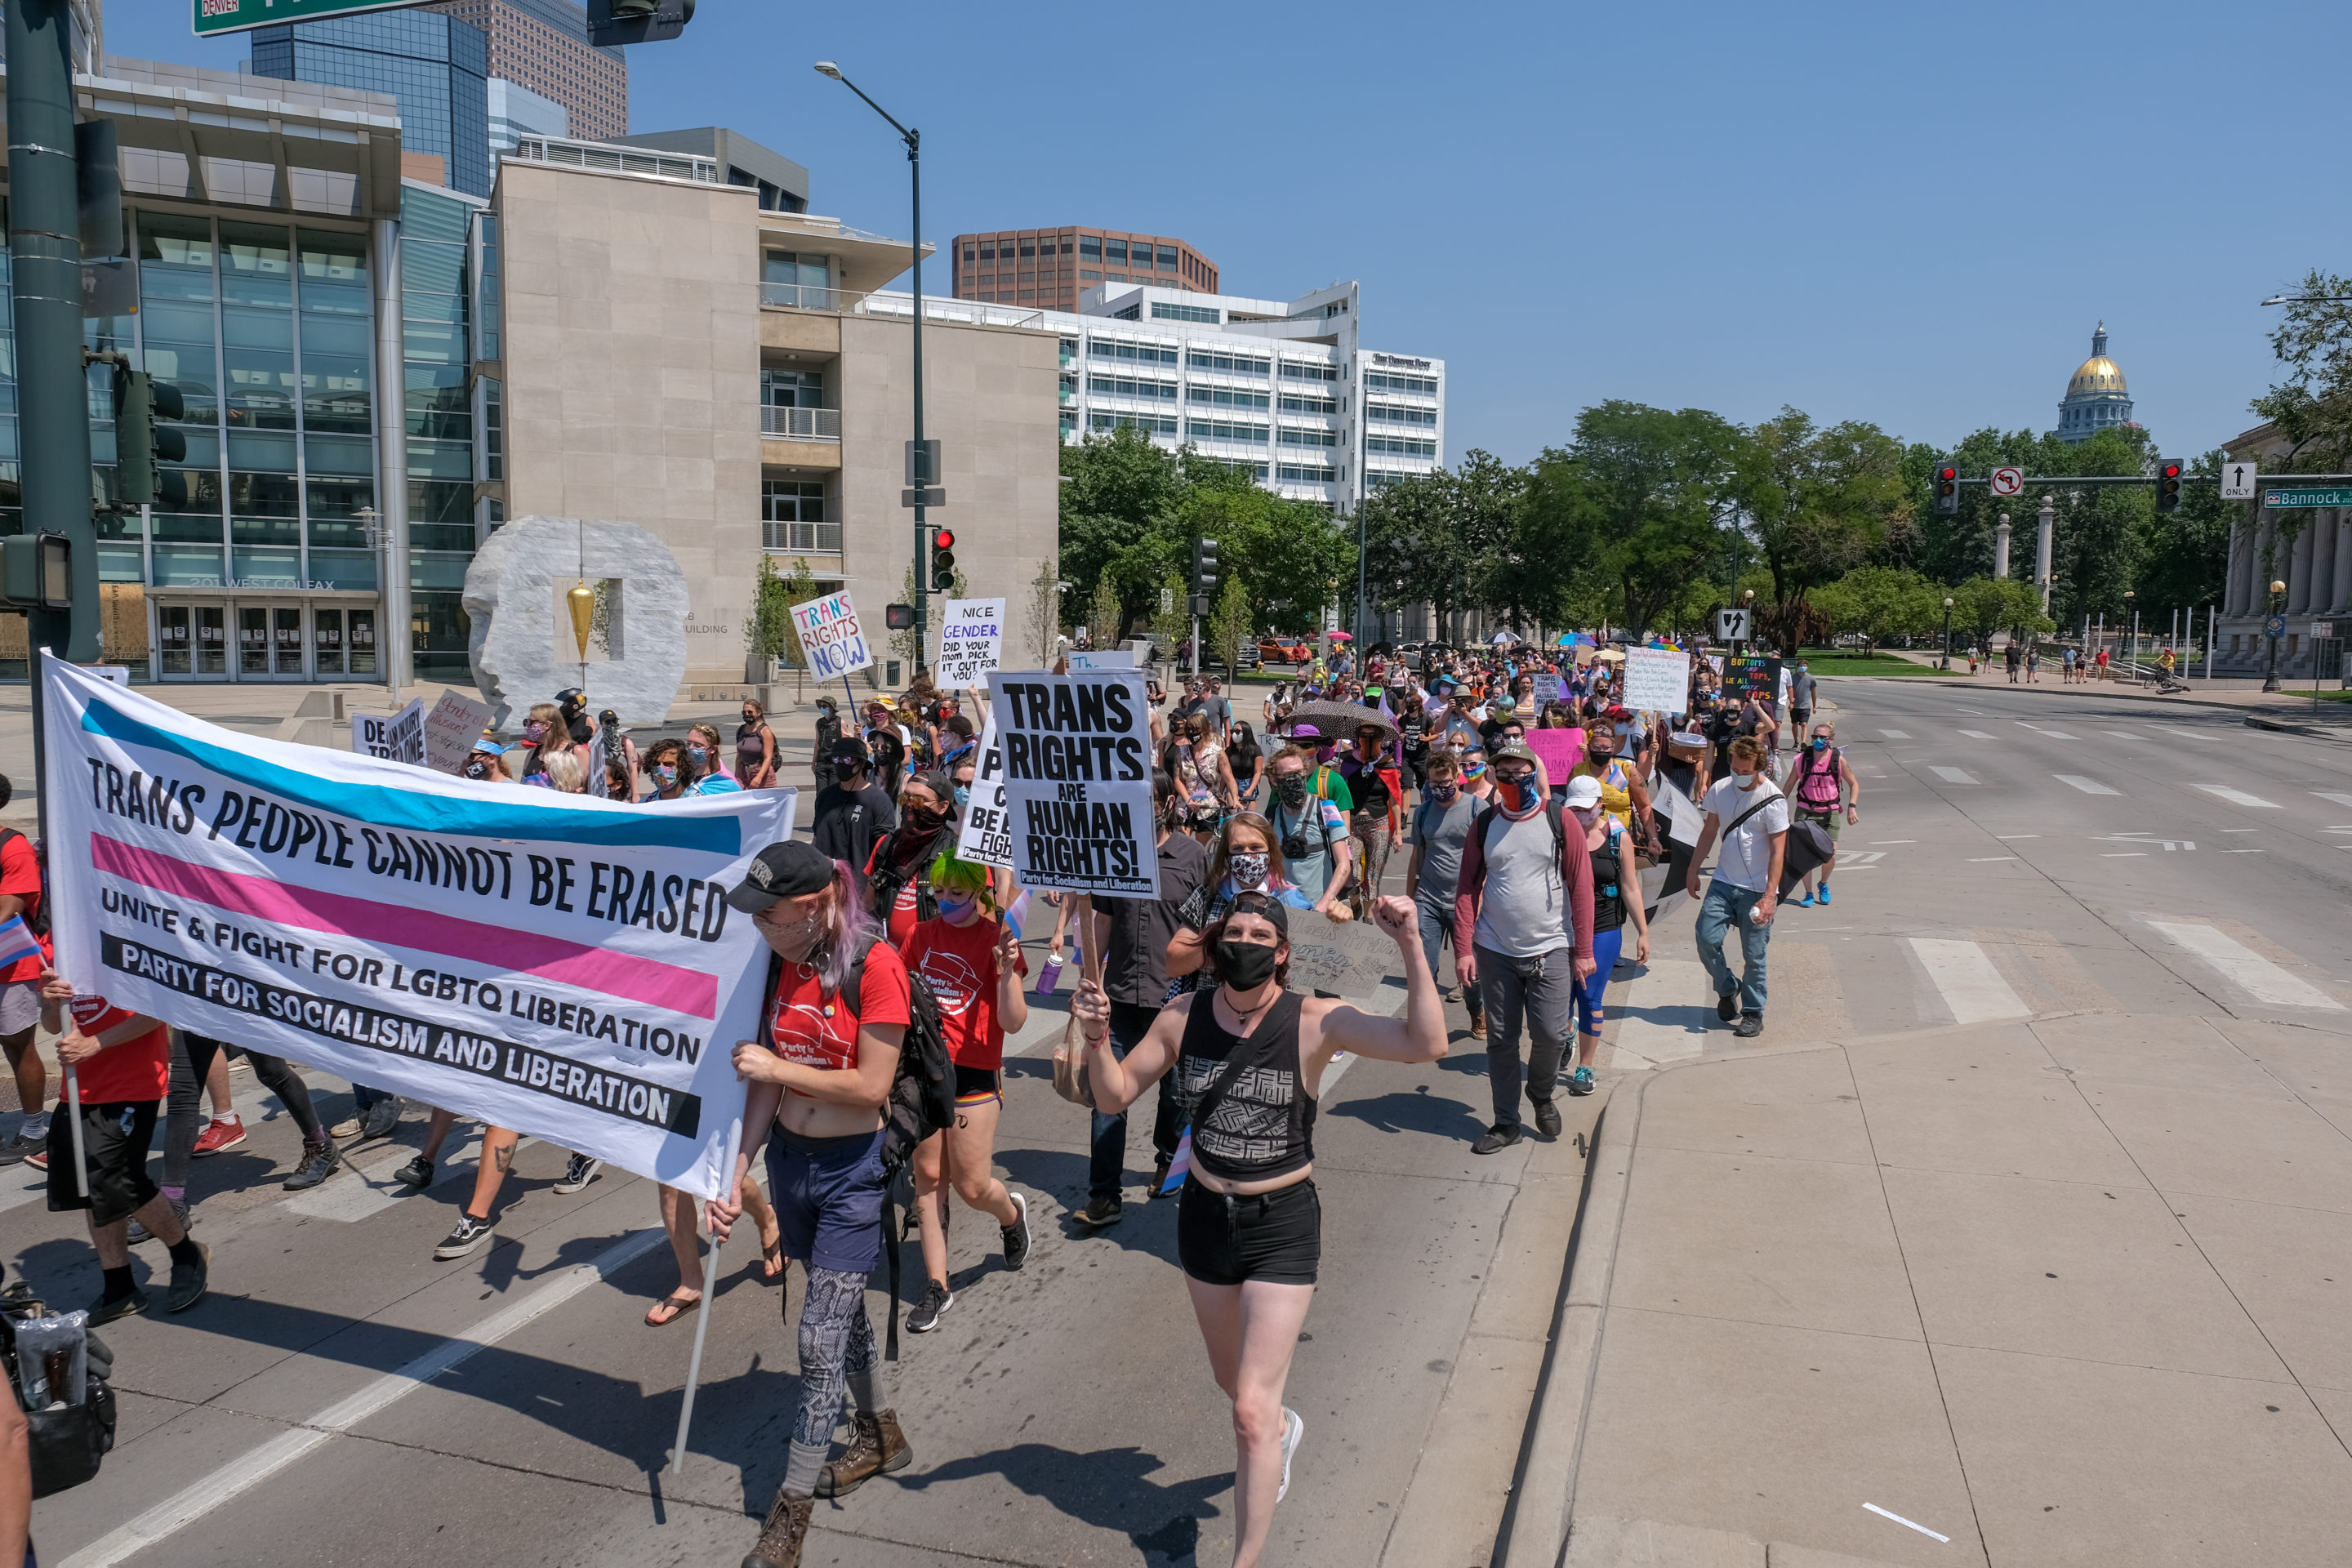 March 4 Trans Rights protest brings vibrance to Denver